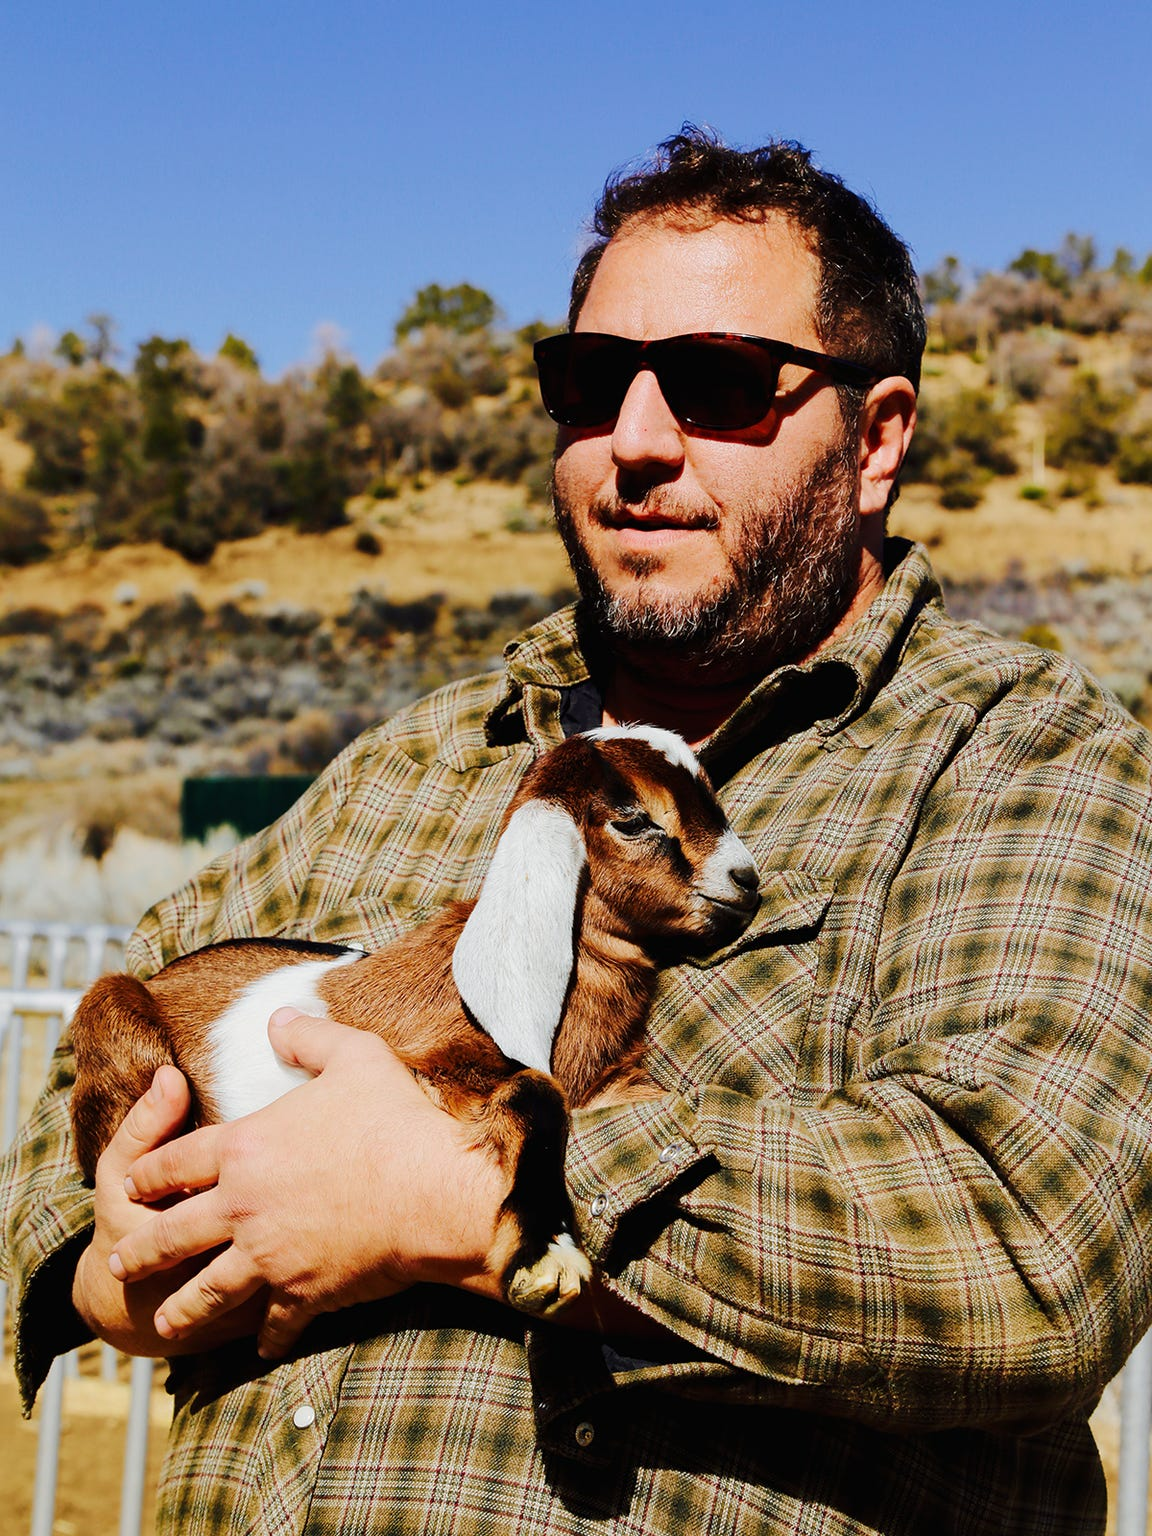 Rick Marino holds a baby goat at Angeles Crest Creamery.